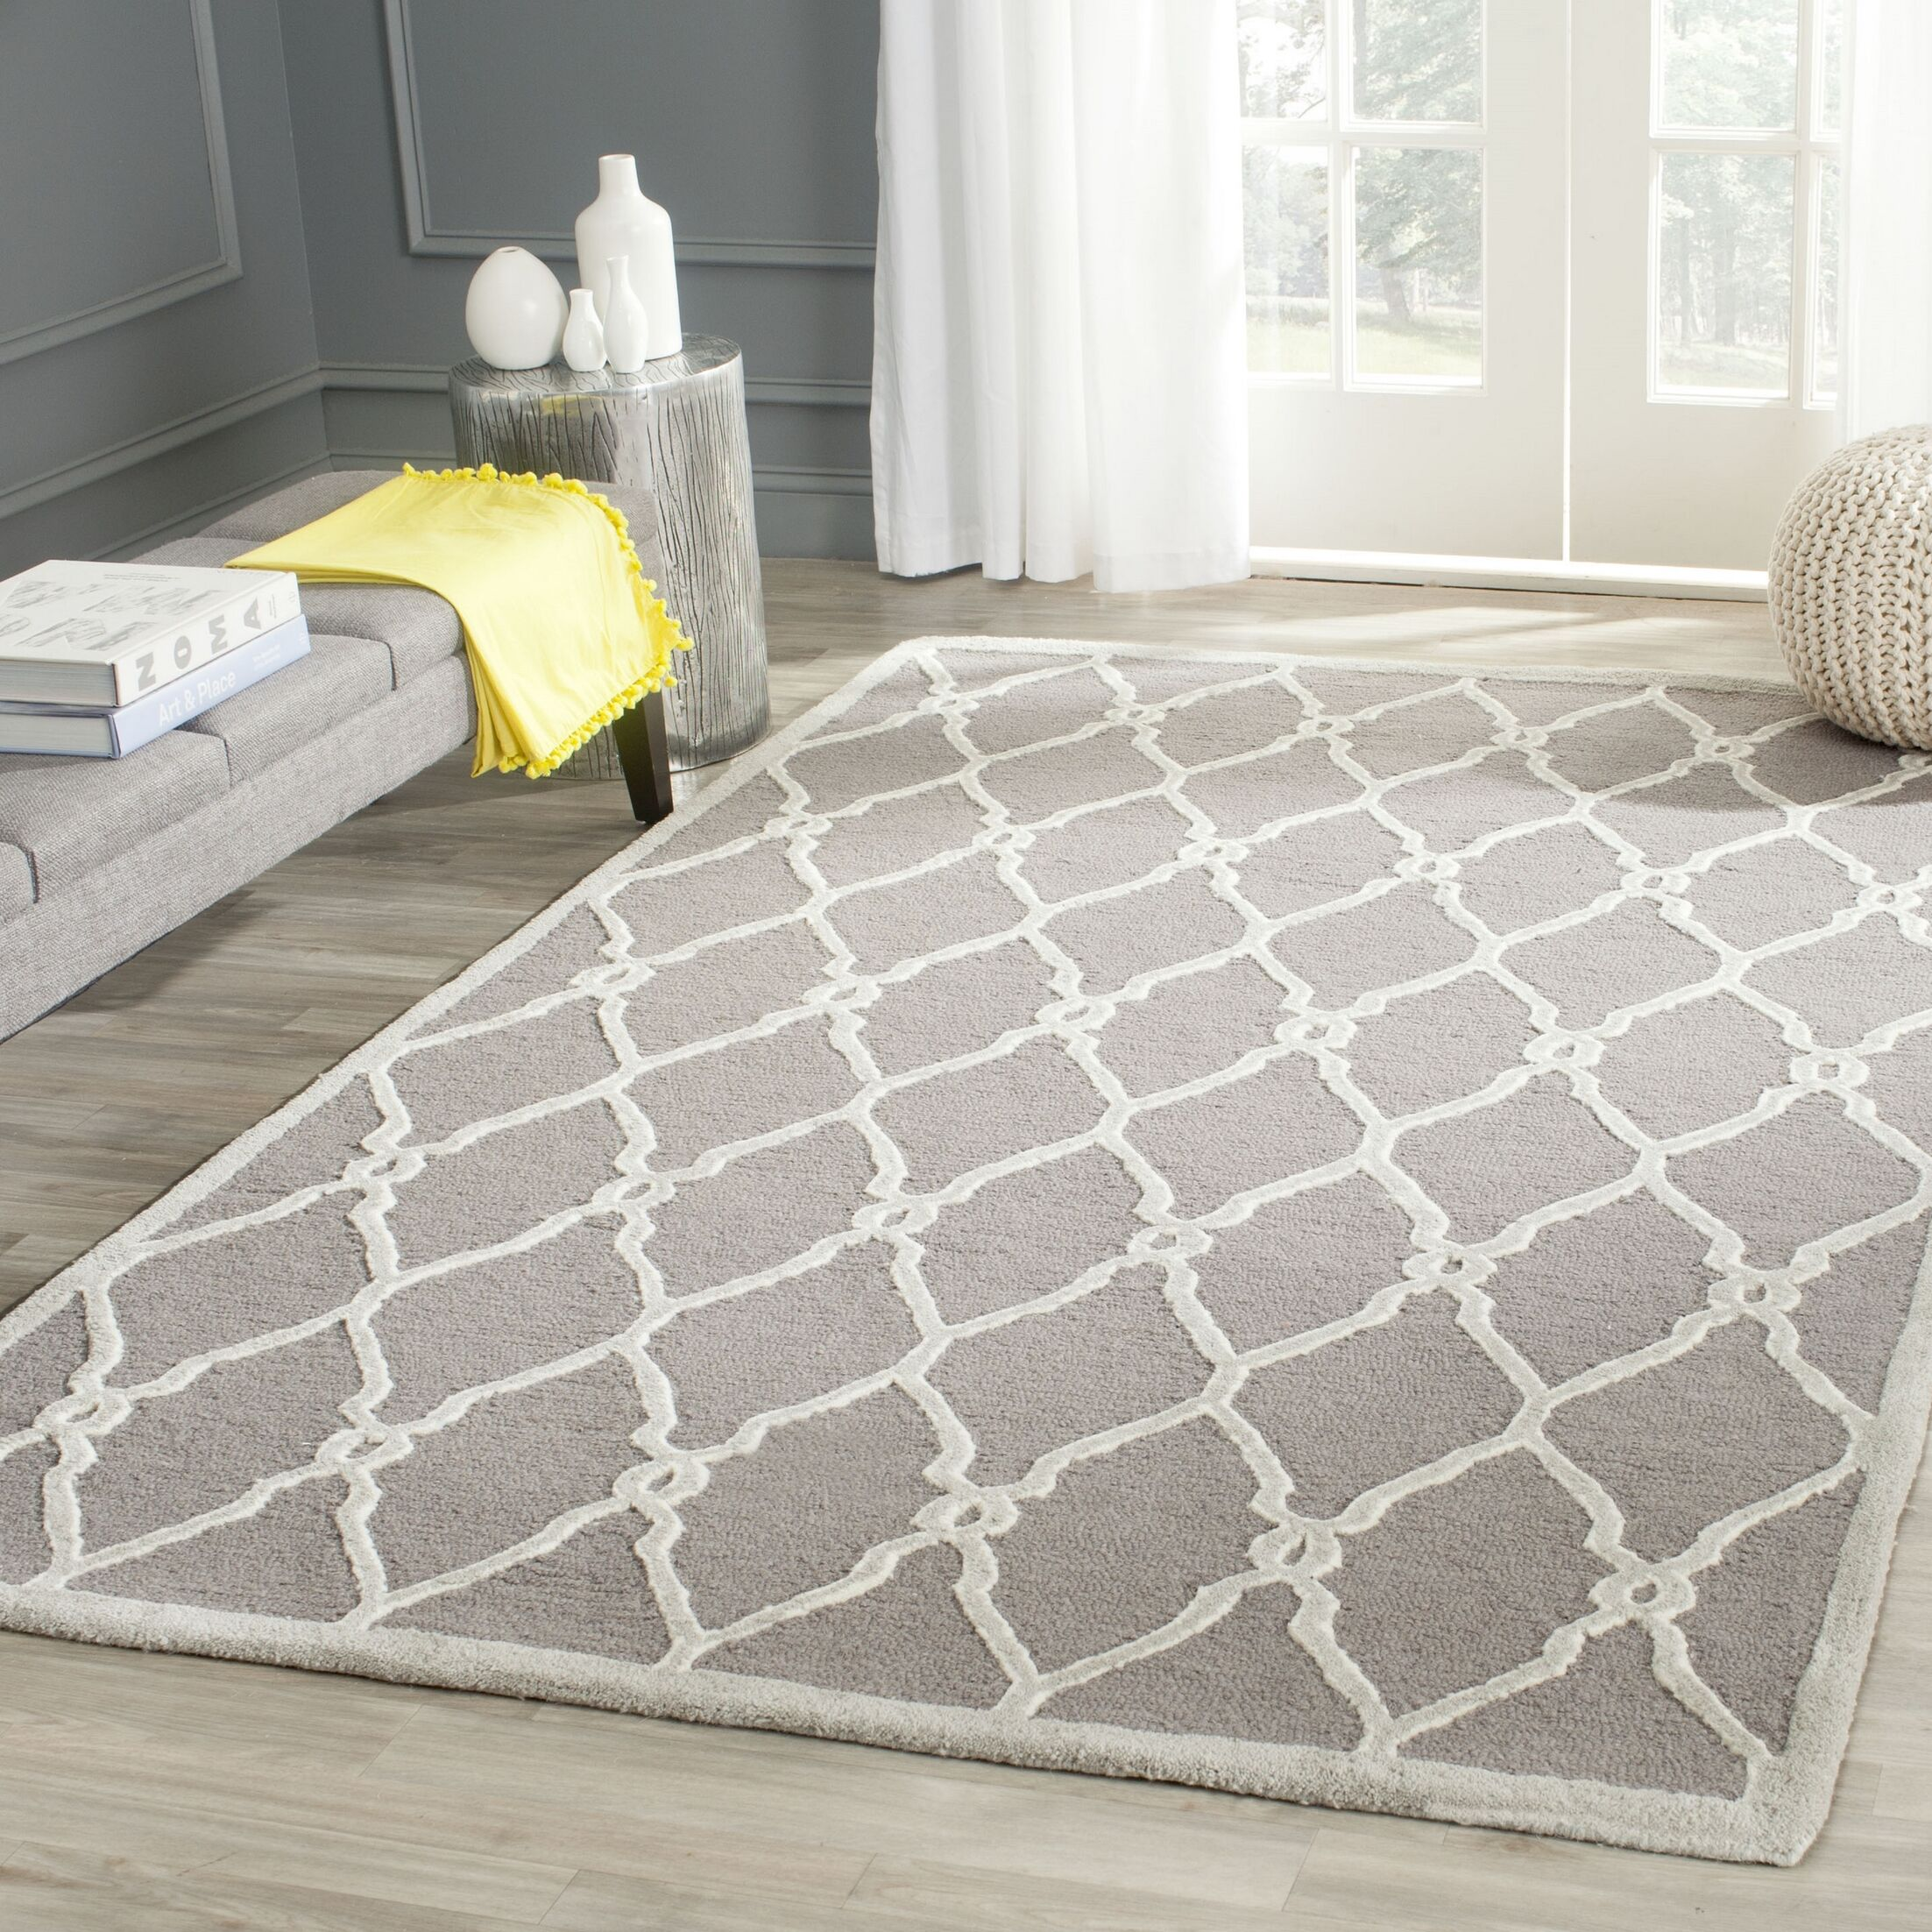 Martins Hand-Tufted Dark Gray/Ivory Area Rug Rug Size: Rectangle 9' x 12'